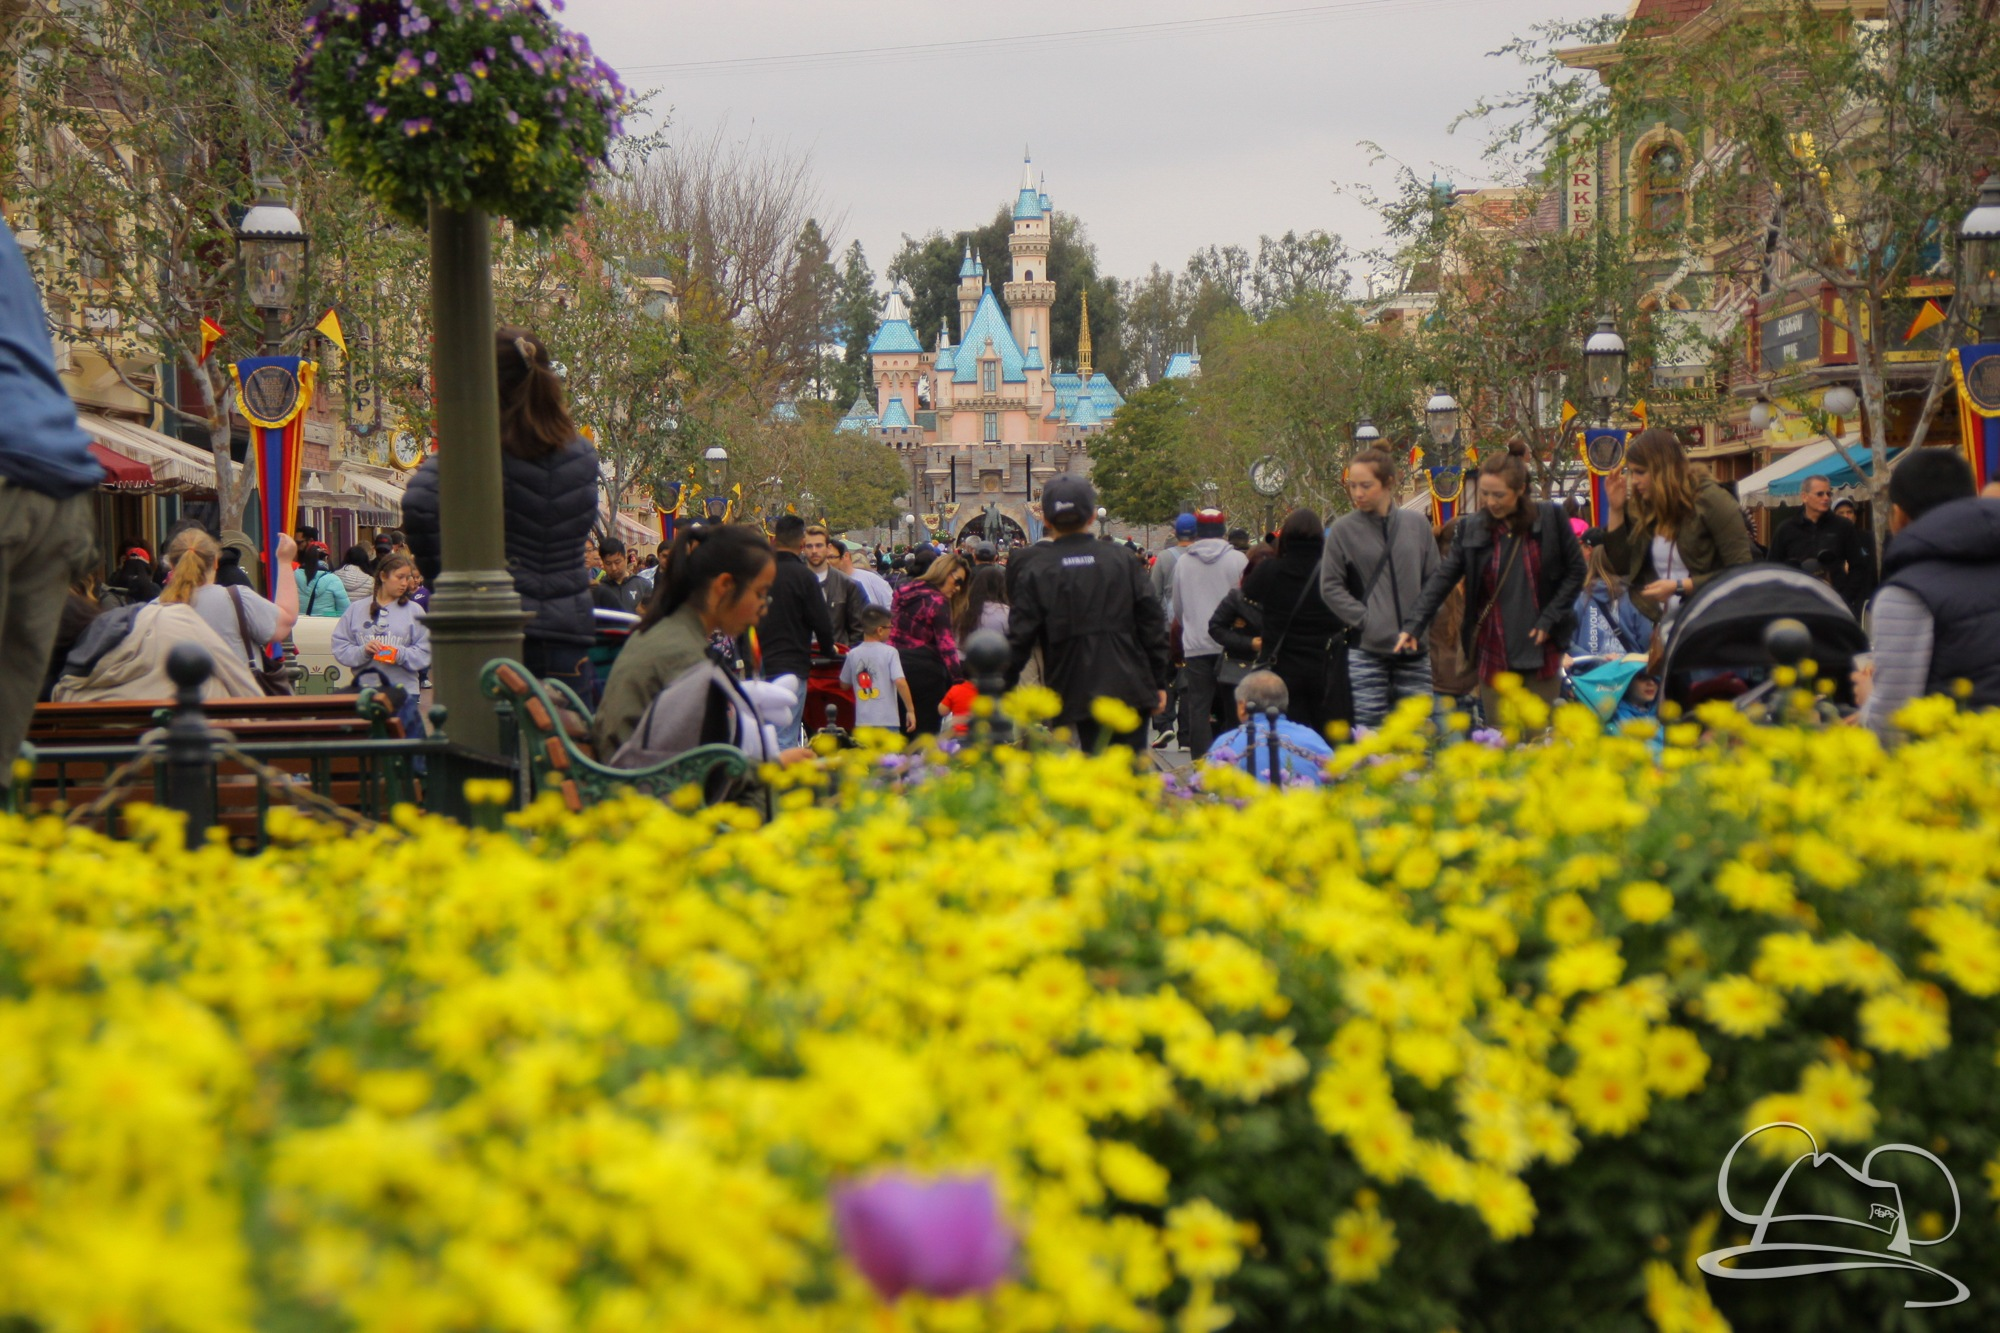 Tips for Taking Small Kids to Disneyland for the First Time